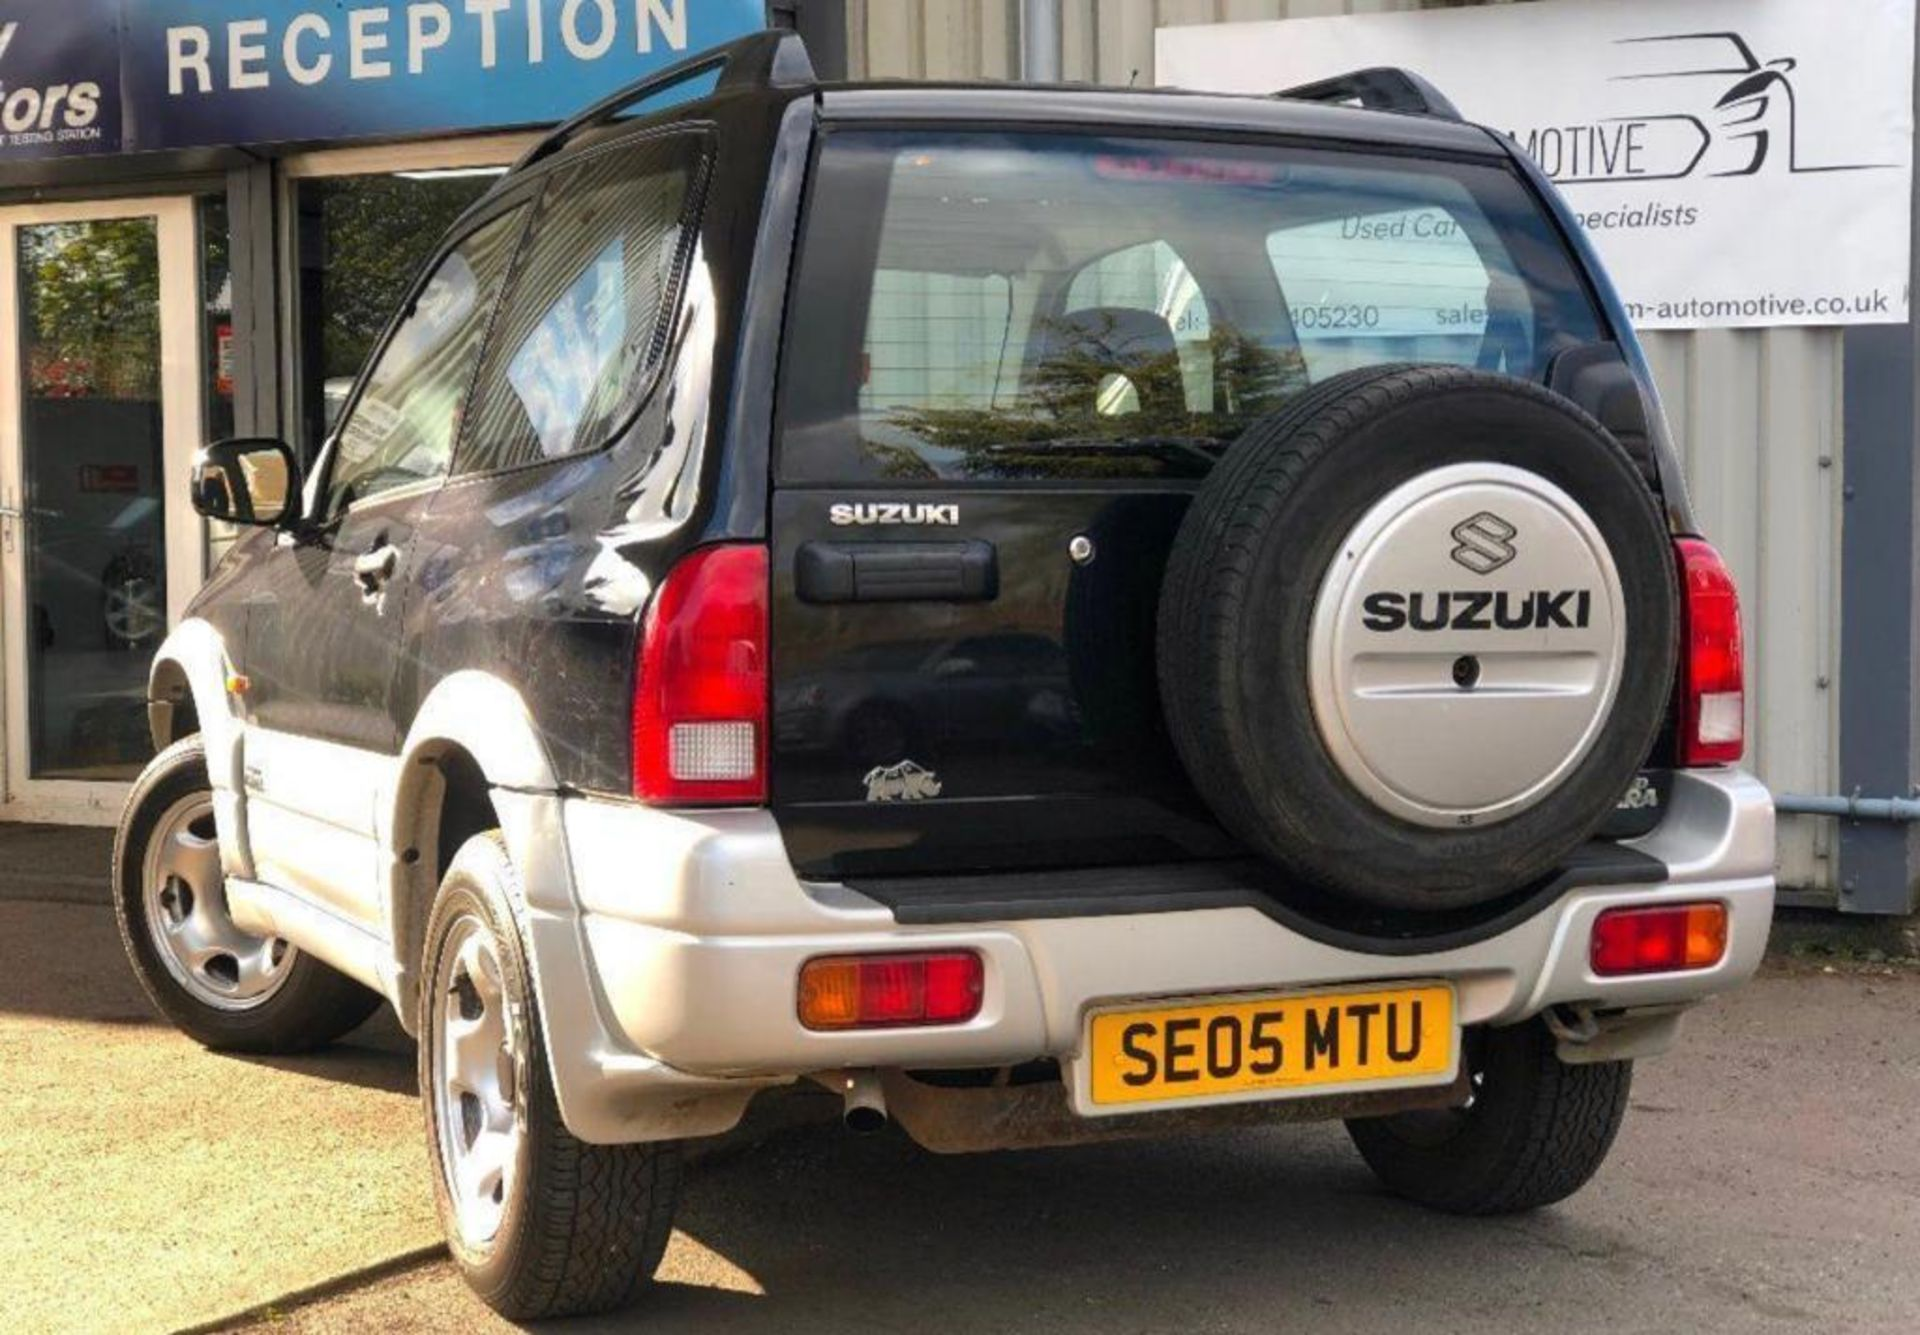 Lot 51 - 2005 SUZUKI GRAND VITARA 16V 1600cc AIR CON P/X TO CLEAR - ONE OWNER FROM NEW!